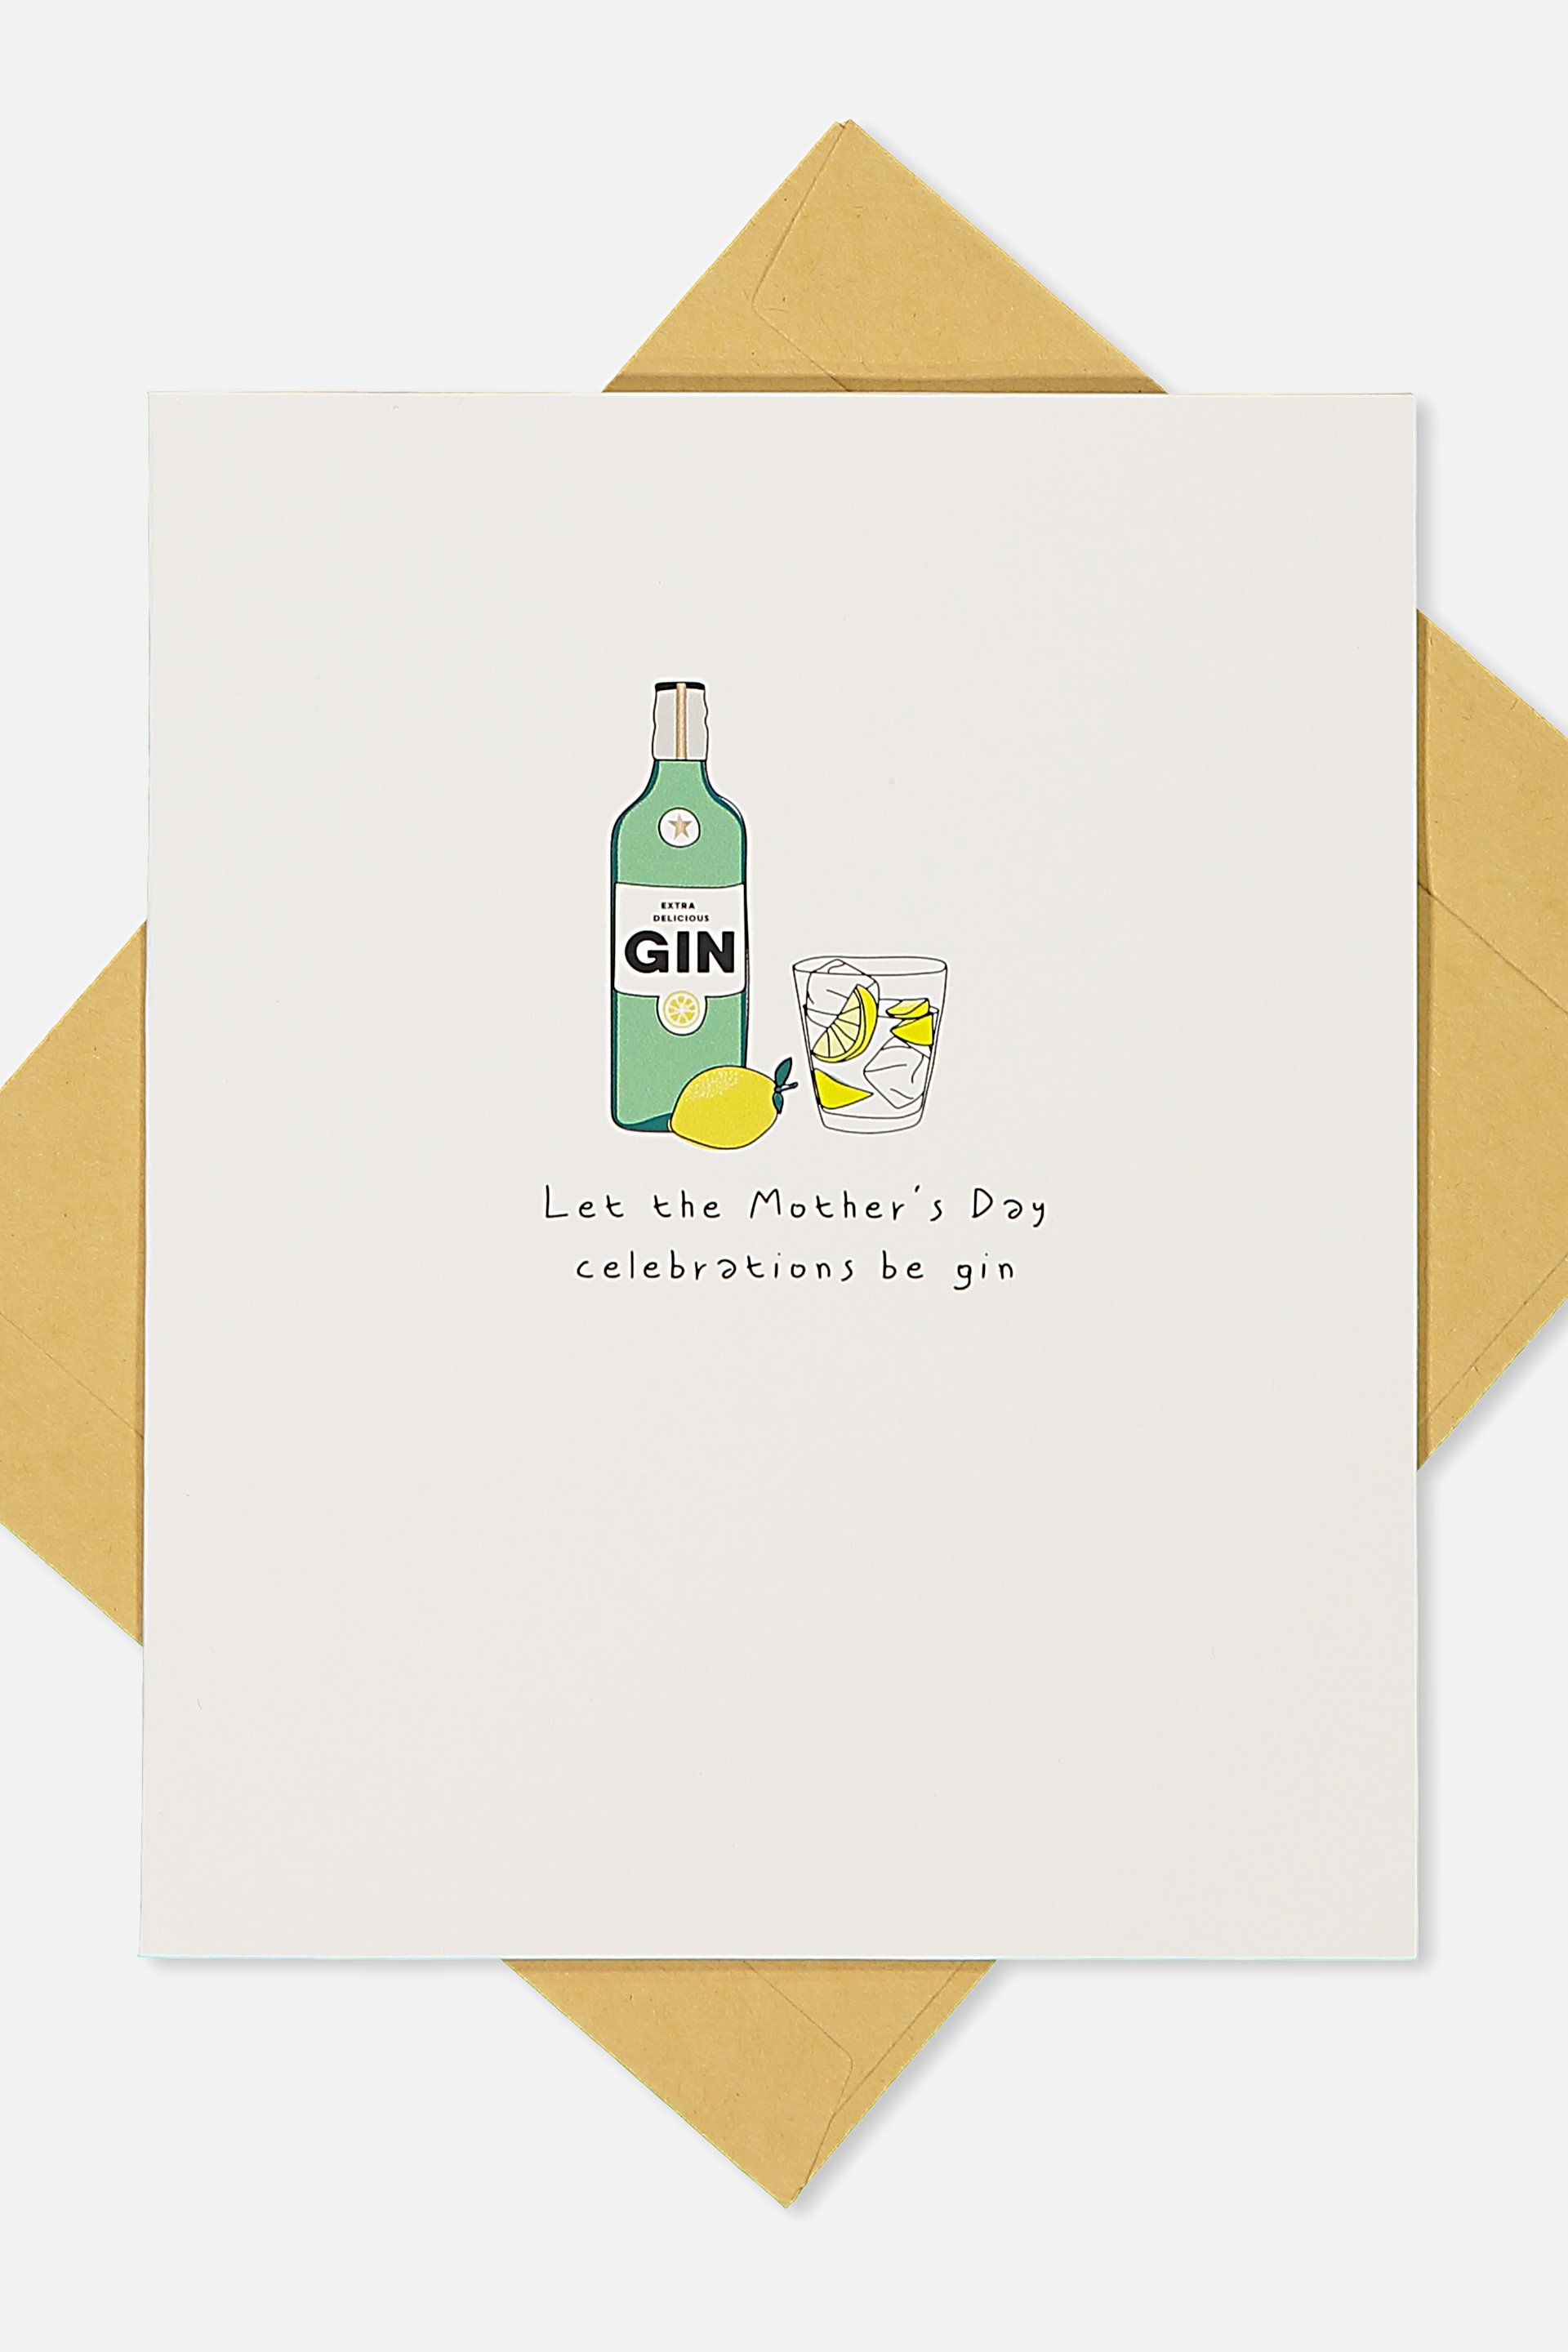 Typo - Mothers Day Cards 2018 - Gin!